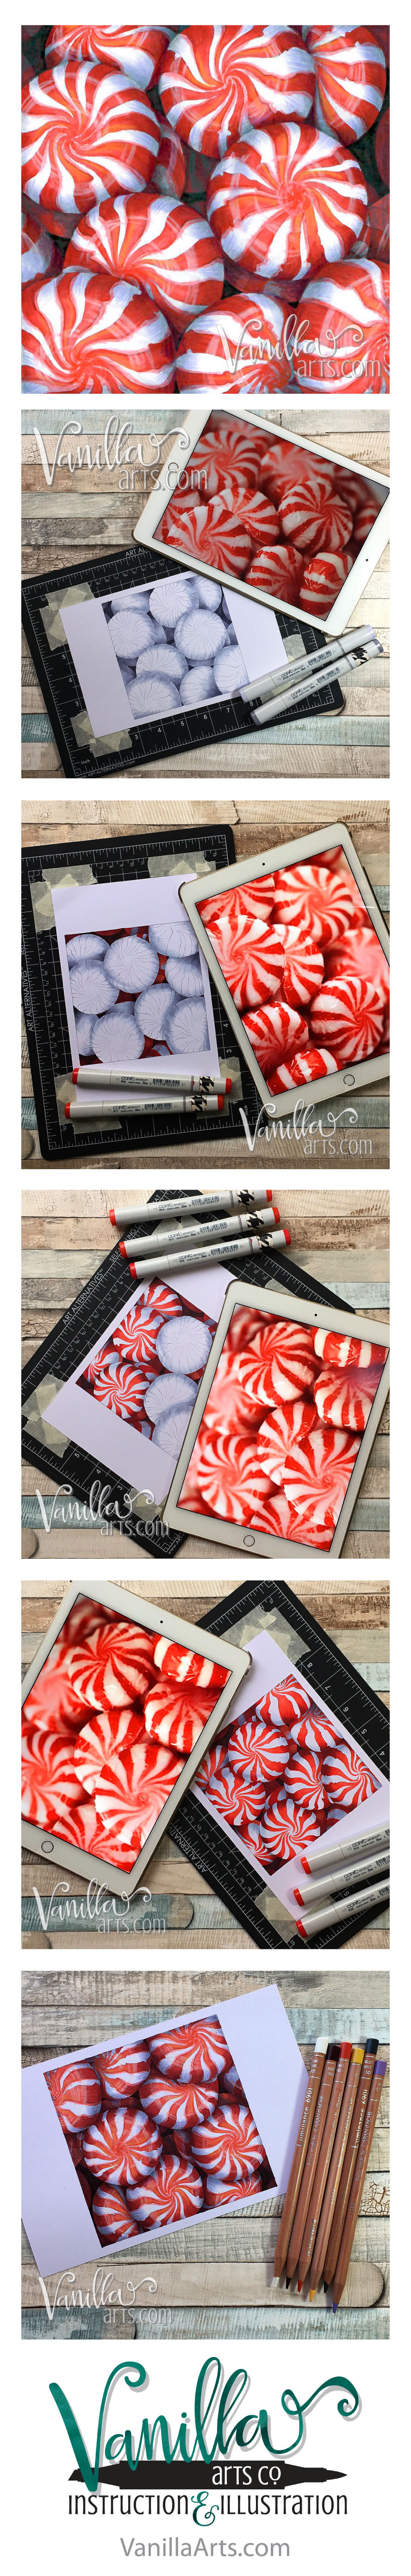 """Cool Peppermint"" a Free Digi Club digital stamp for subscribers. Take the online class too! 